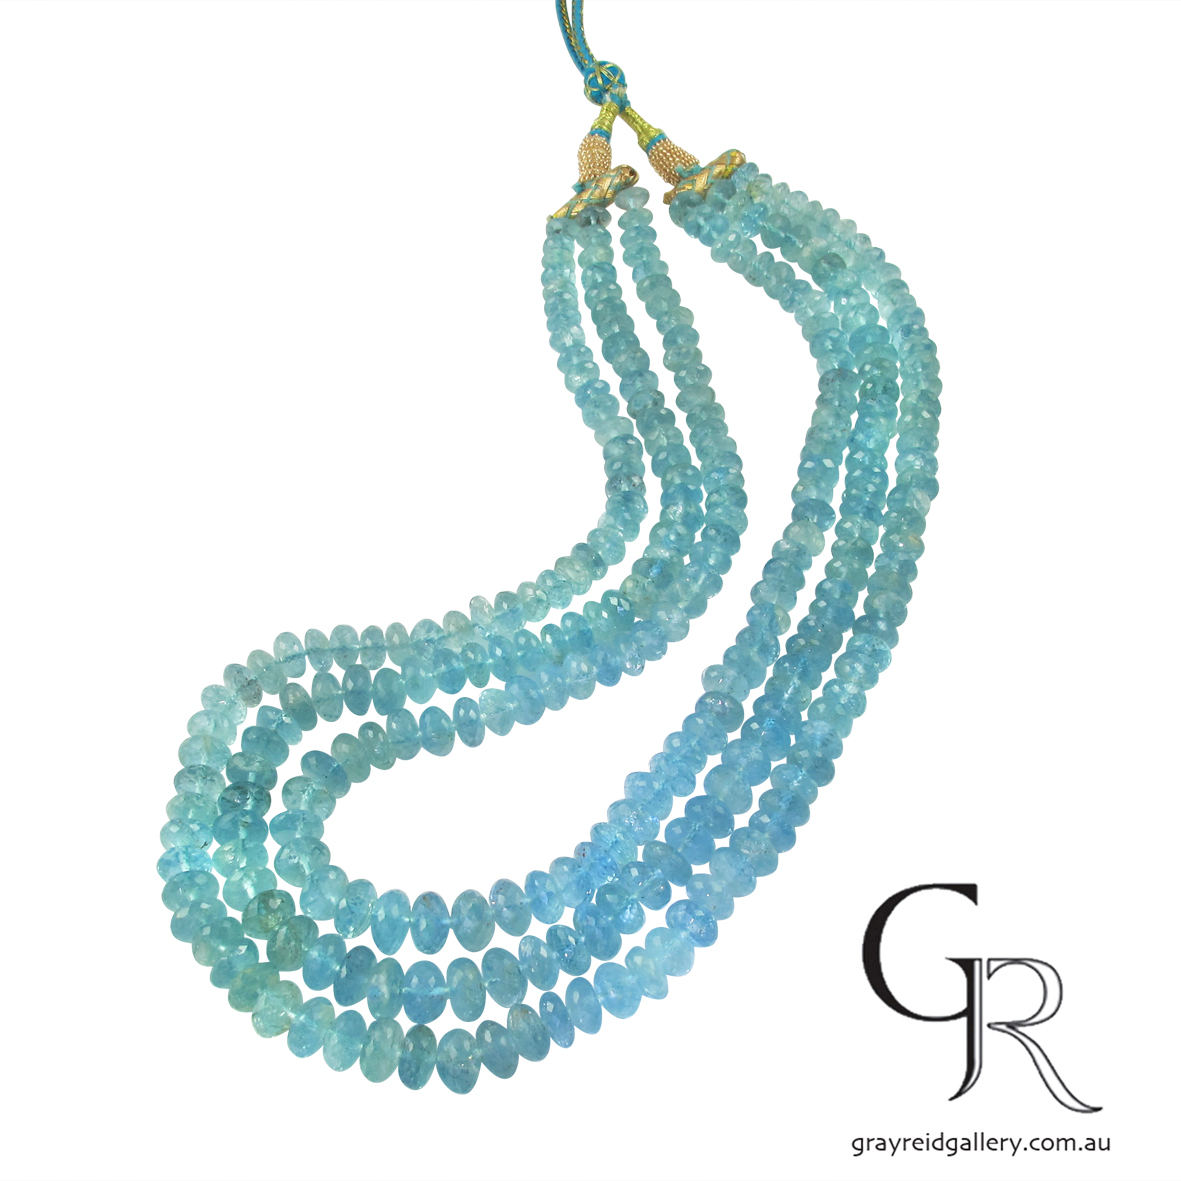 Natural Faceted Aquamarine Beads